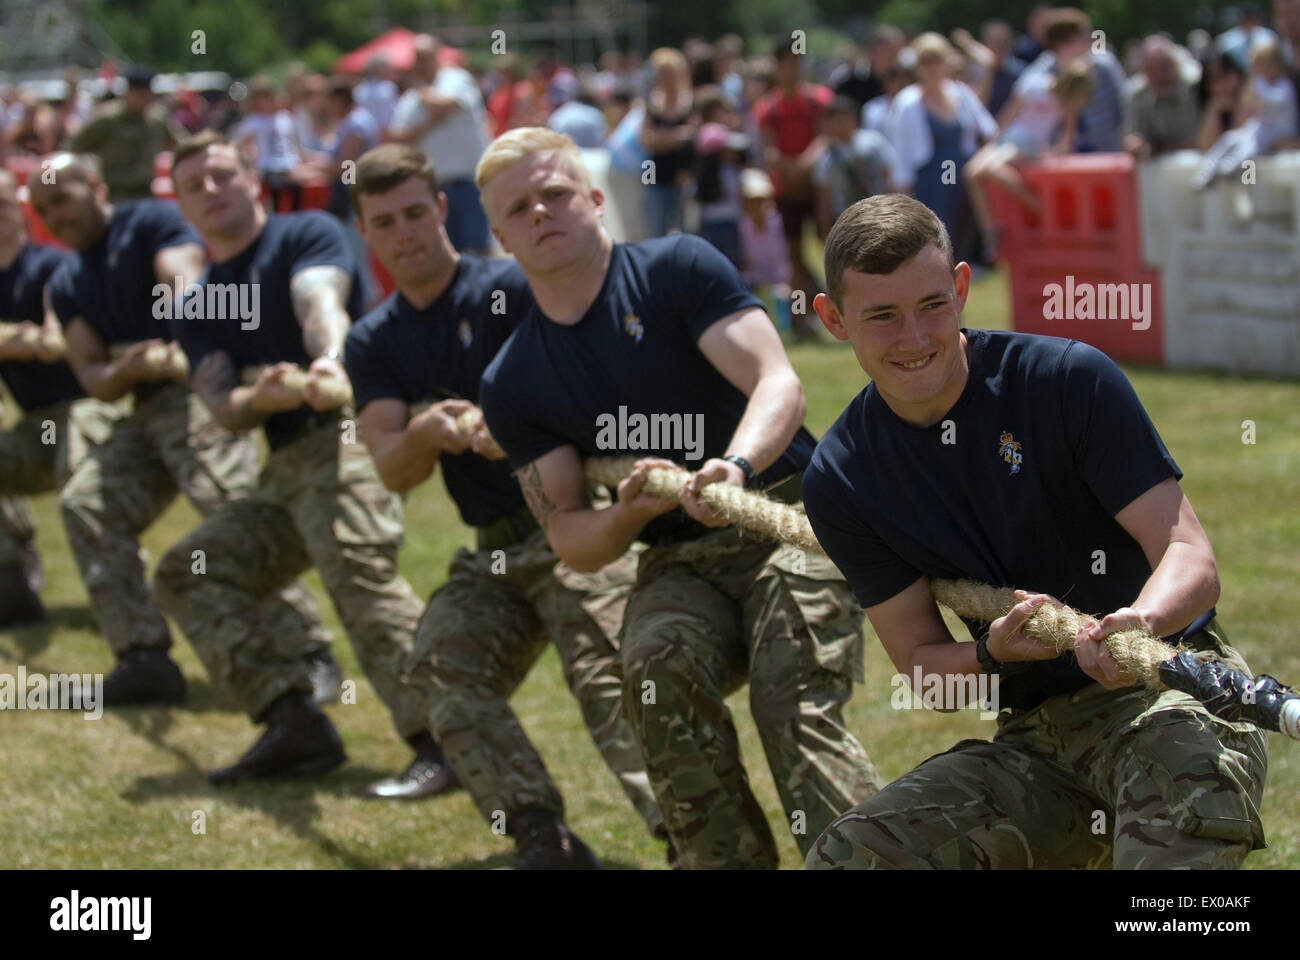 10 Trg Bn Inter Platoon Tug 'o' War, Farewell to the Garrison Festival, Bordon, Hampshire, UK. Saturday - Stock Image